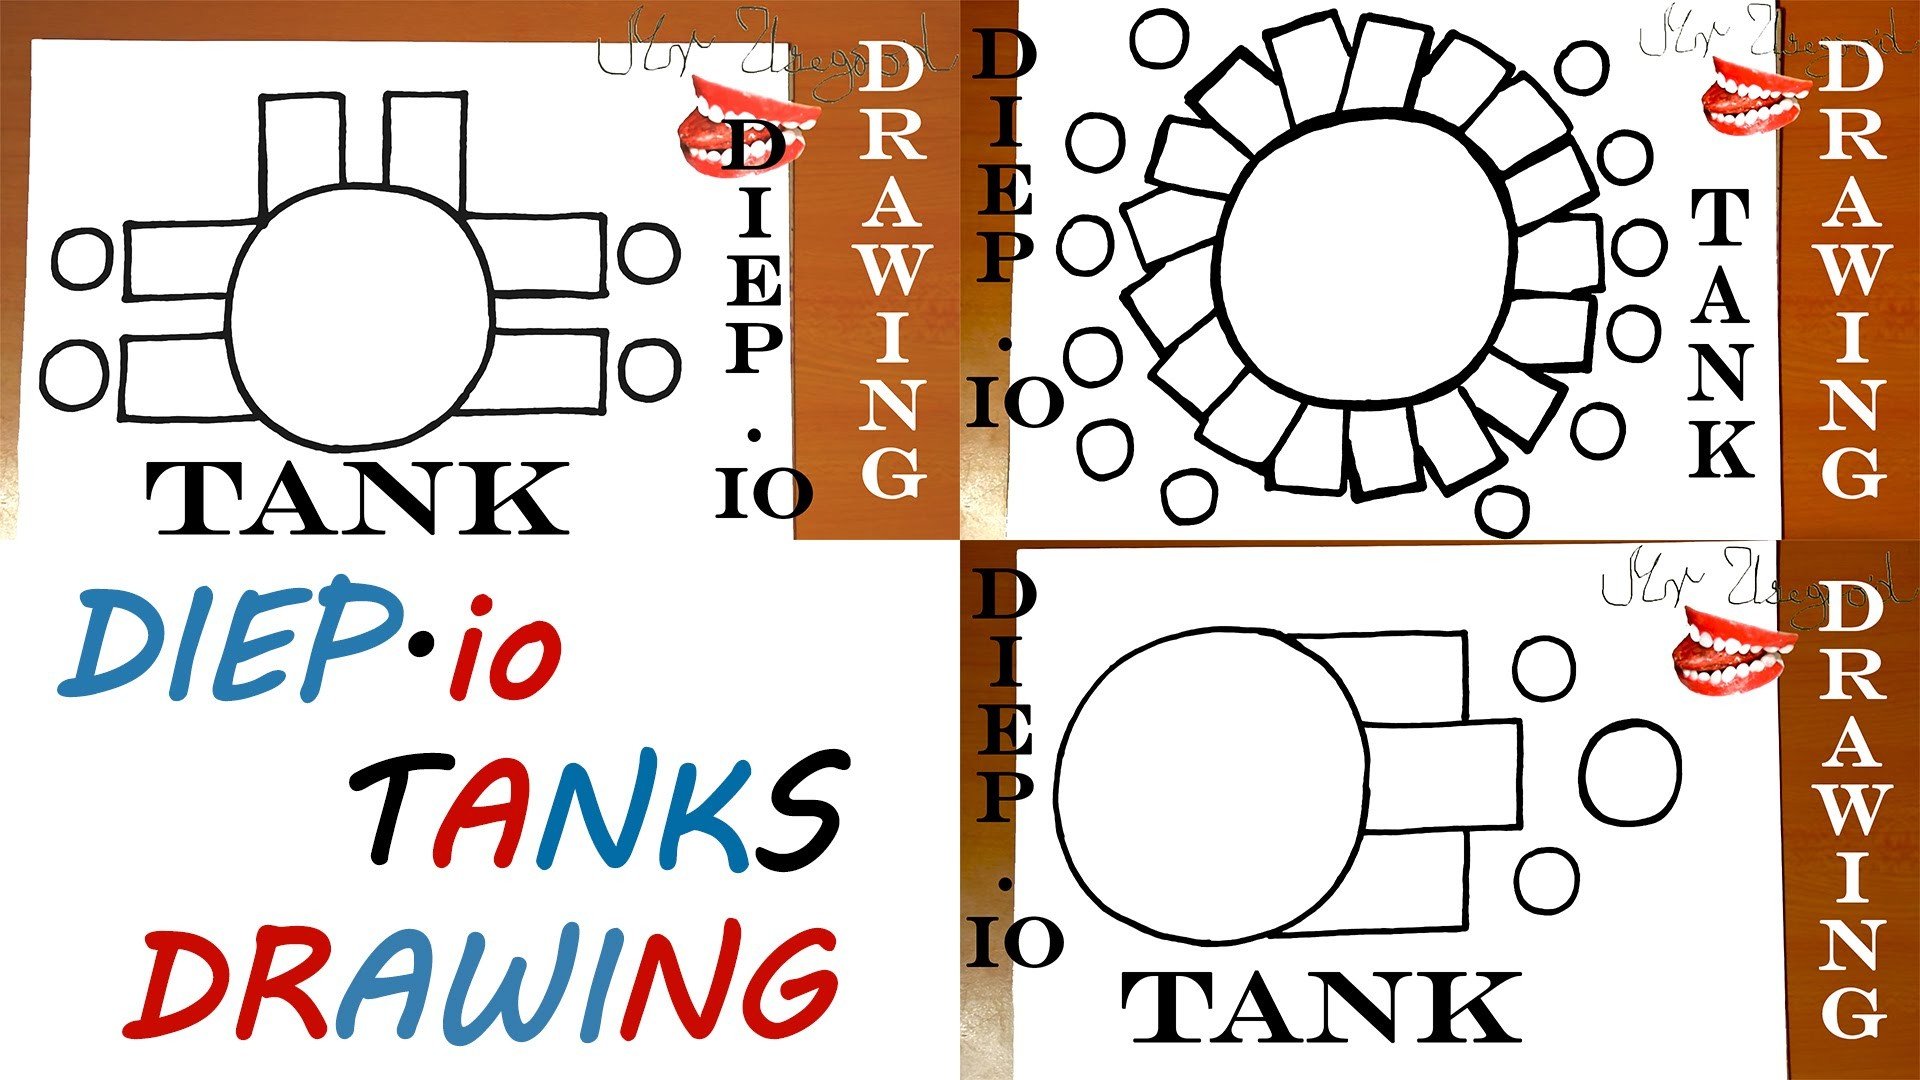 1920x1080 how to draw a tank valid diep best tank drawing how to draw a tank